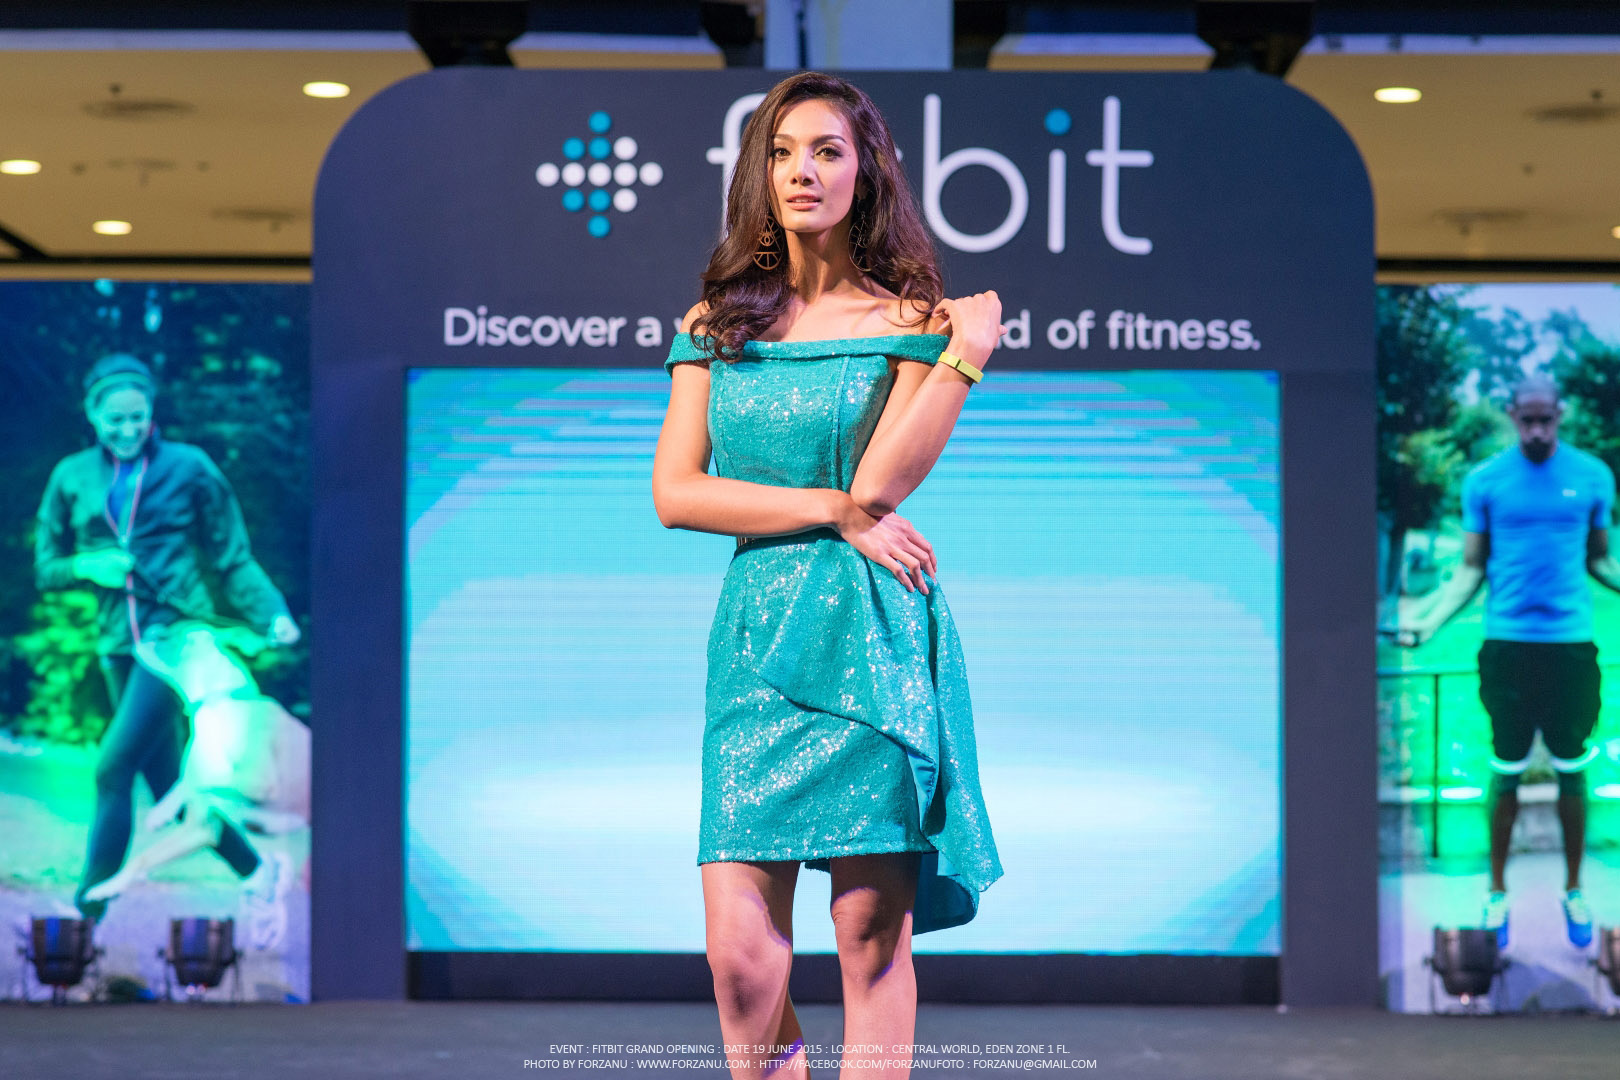 FITBIT_OPENING_0034